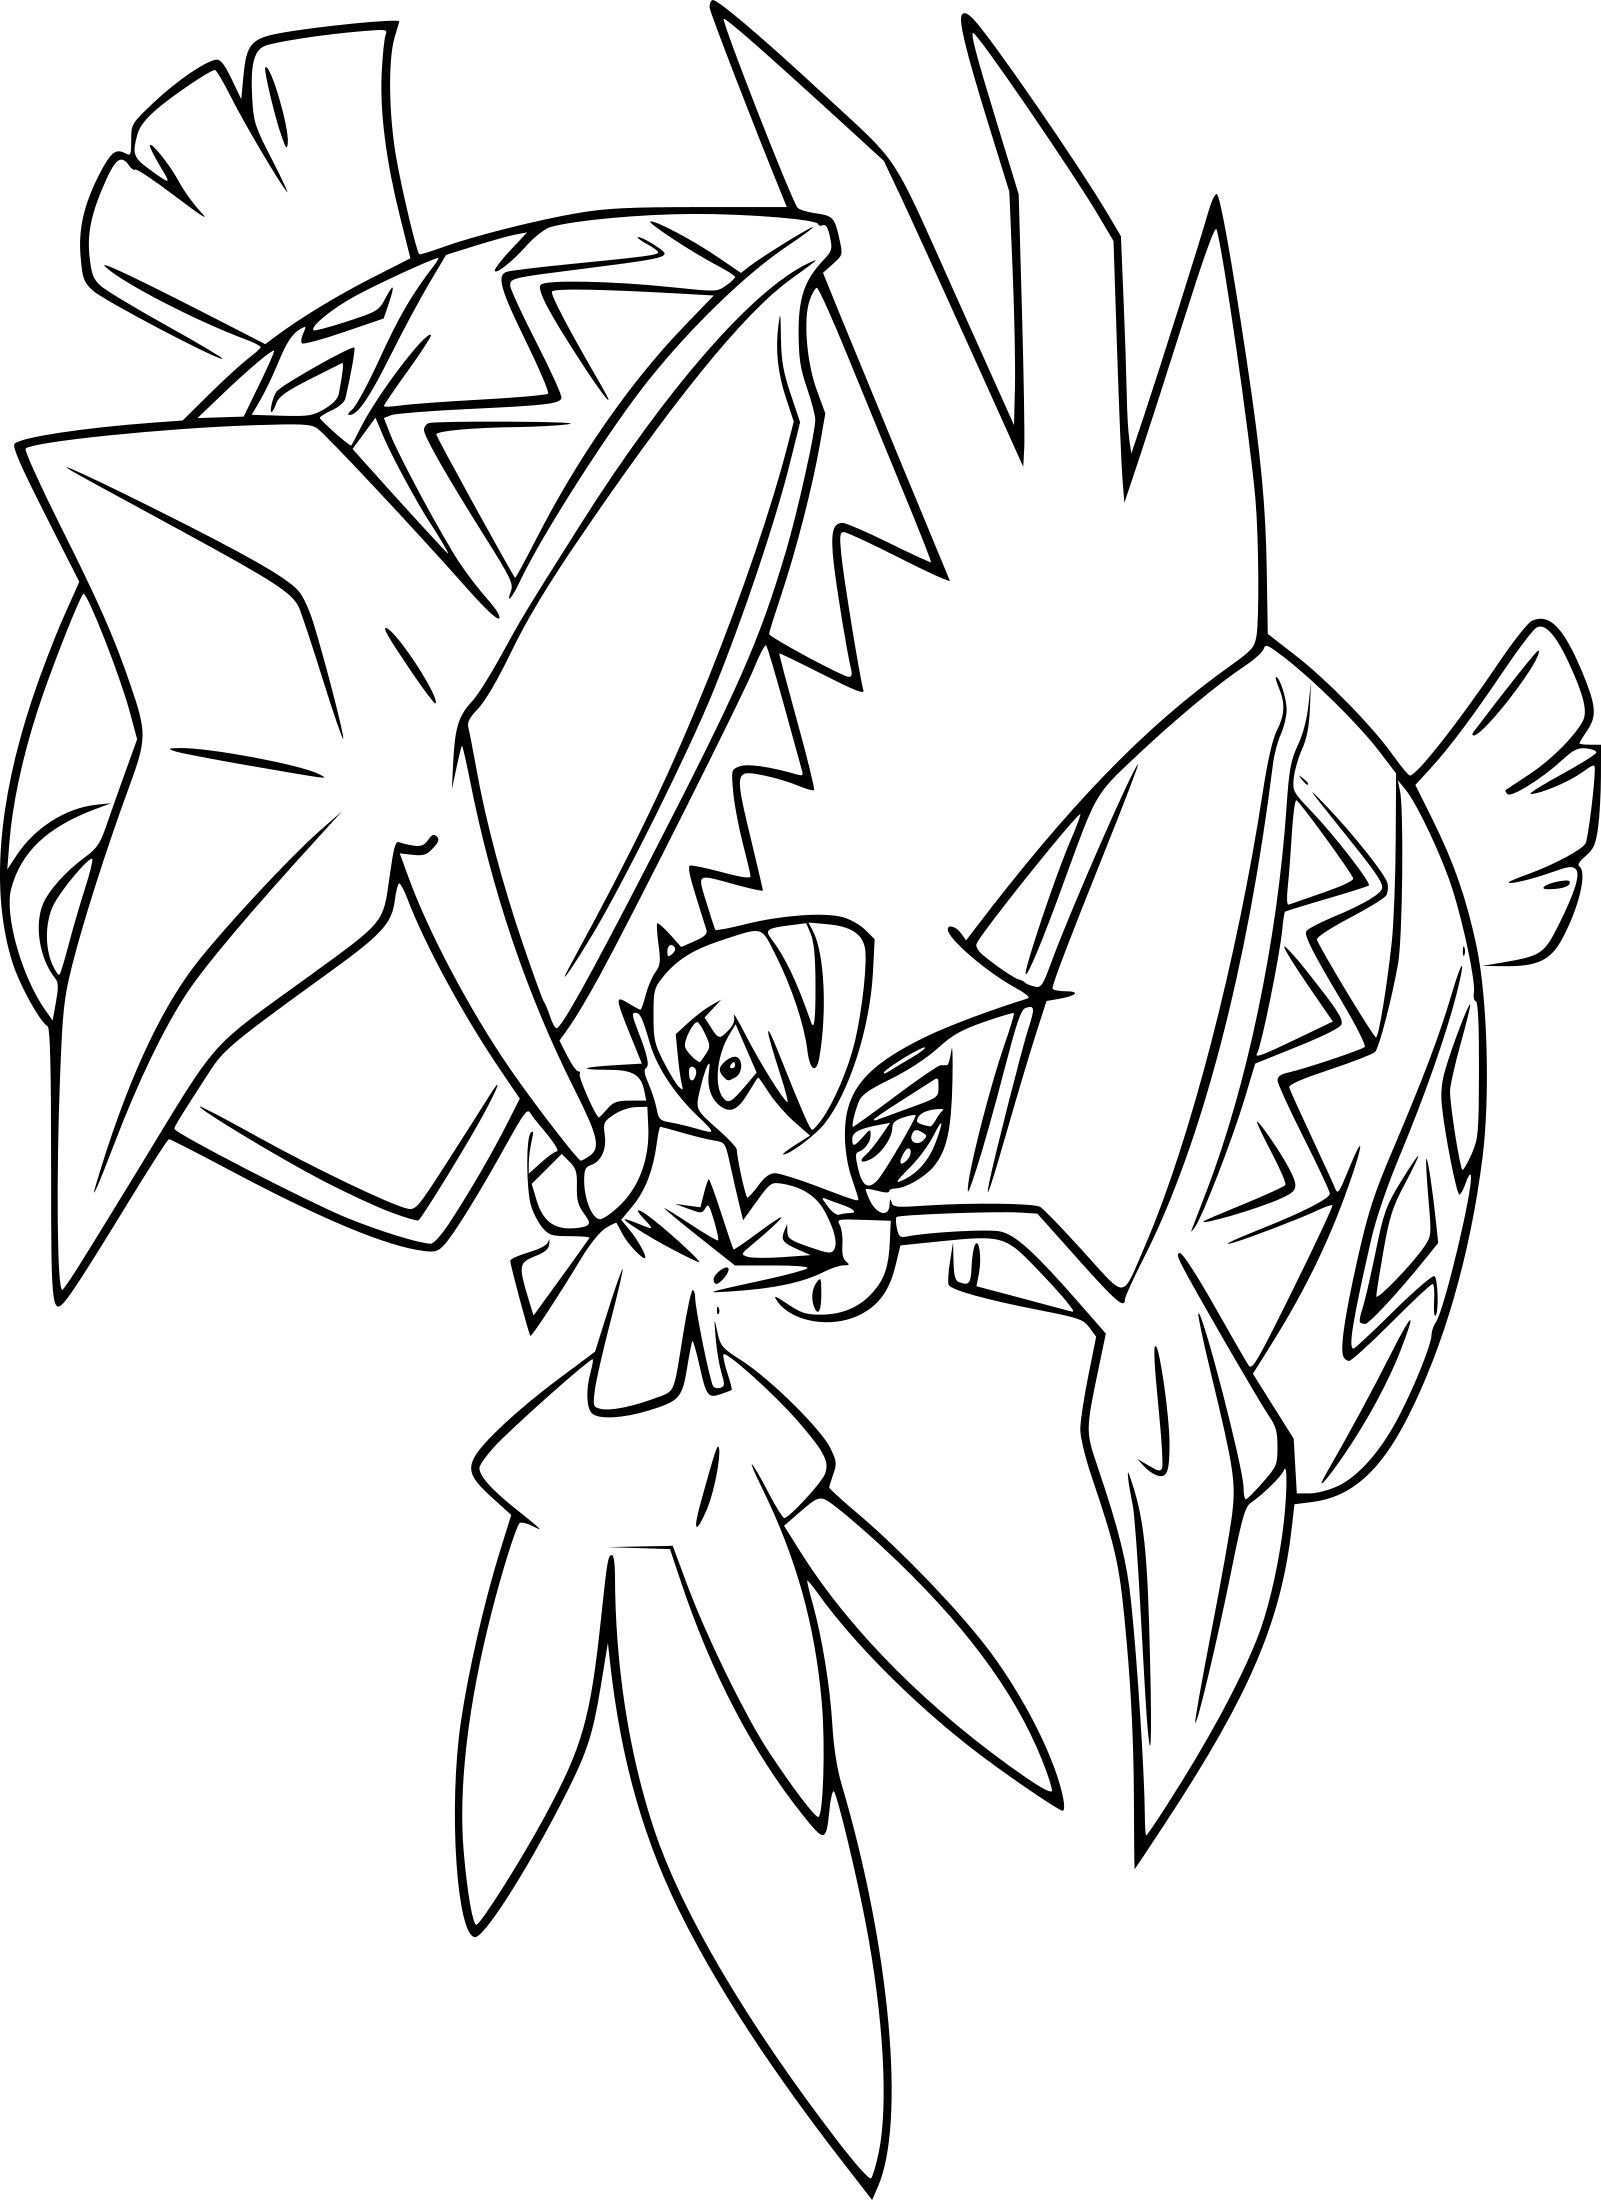 Pokemon Coloring Pages Tapu Koko From The Thousand Pictures On The Internet About Pokemon C Moon Coloring Pages Pokemon Coloring Pages Cartoon Coloring Pages